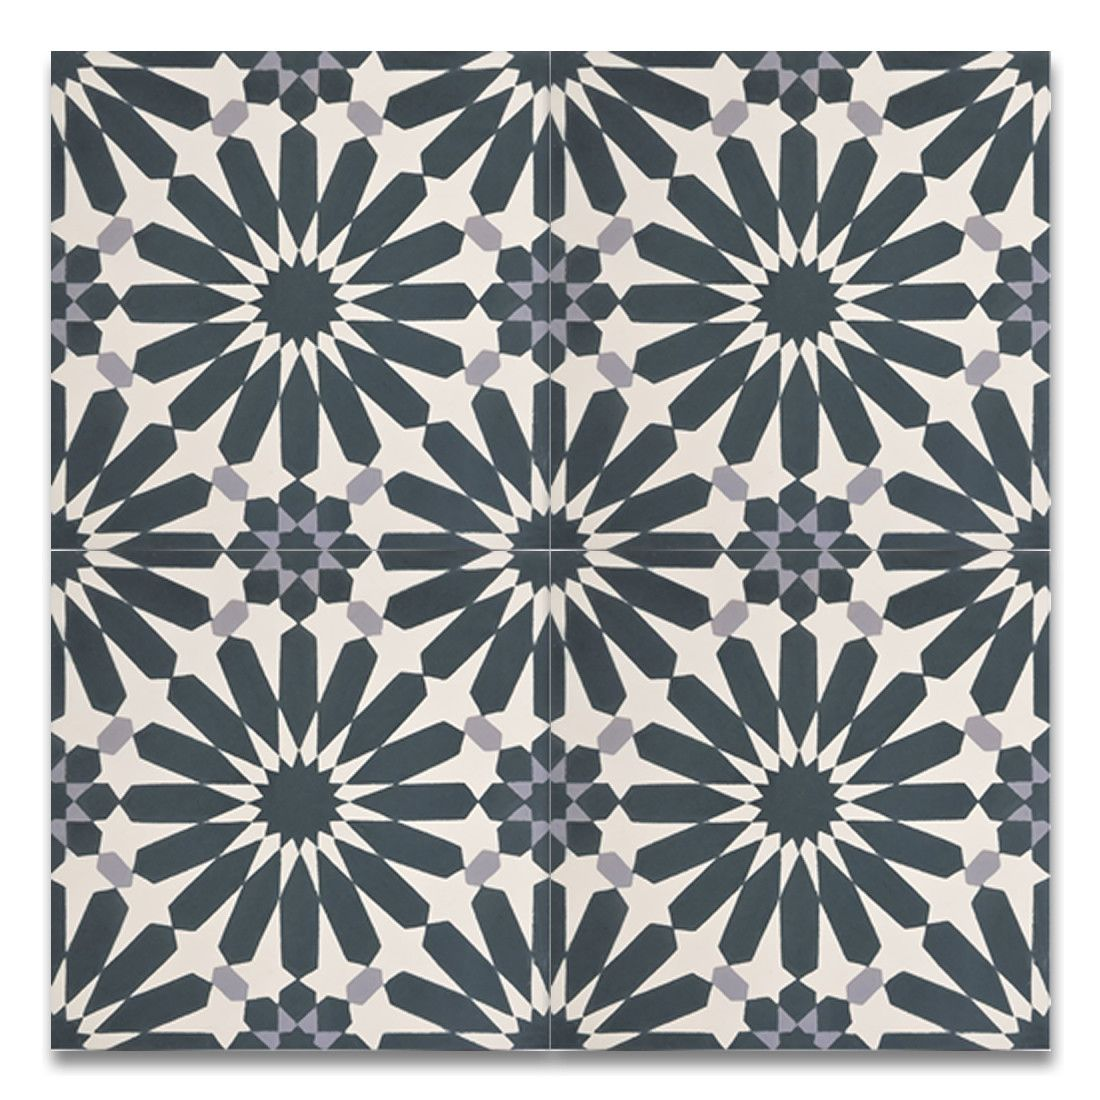 Alhambra Handmade 8 X 8 Cement Subway Tile In Navy Blue